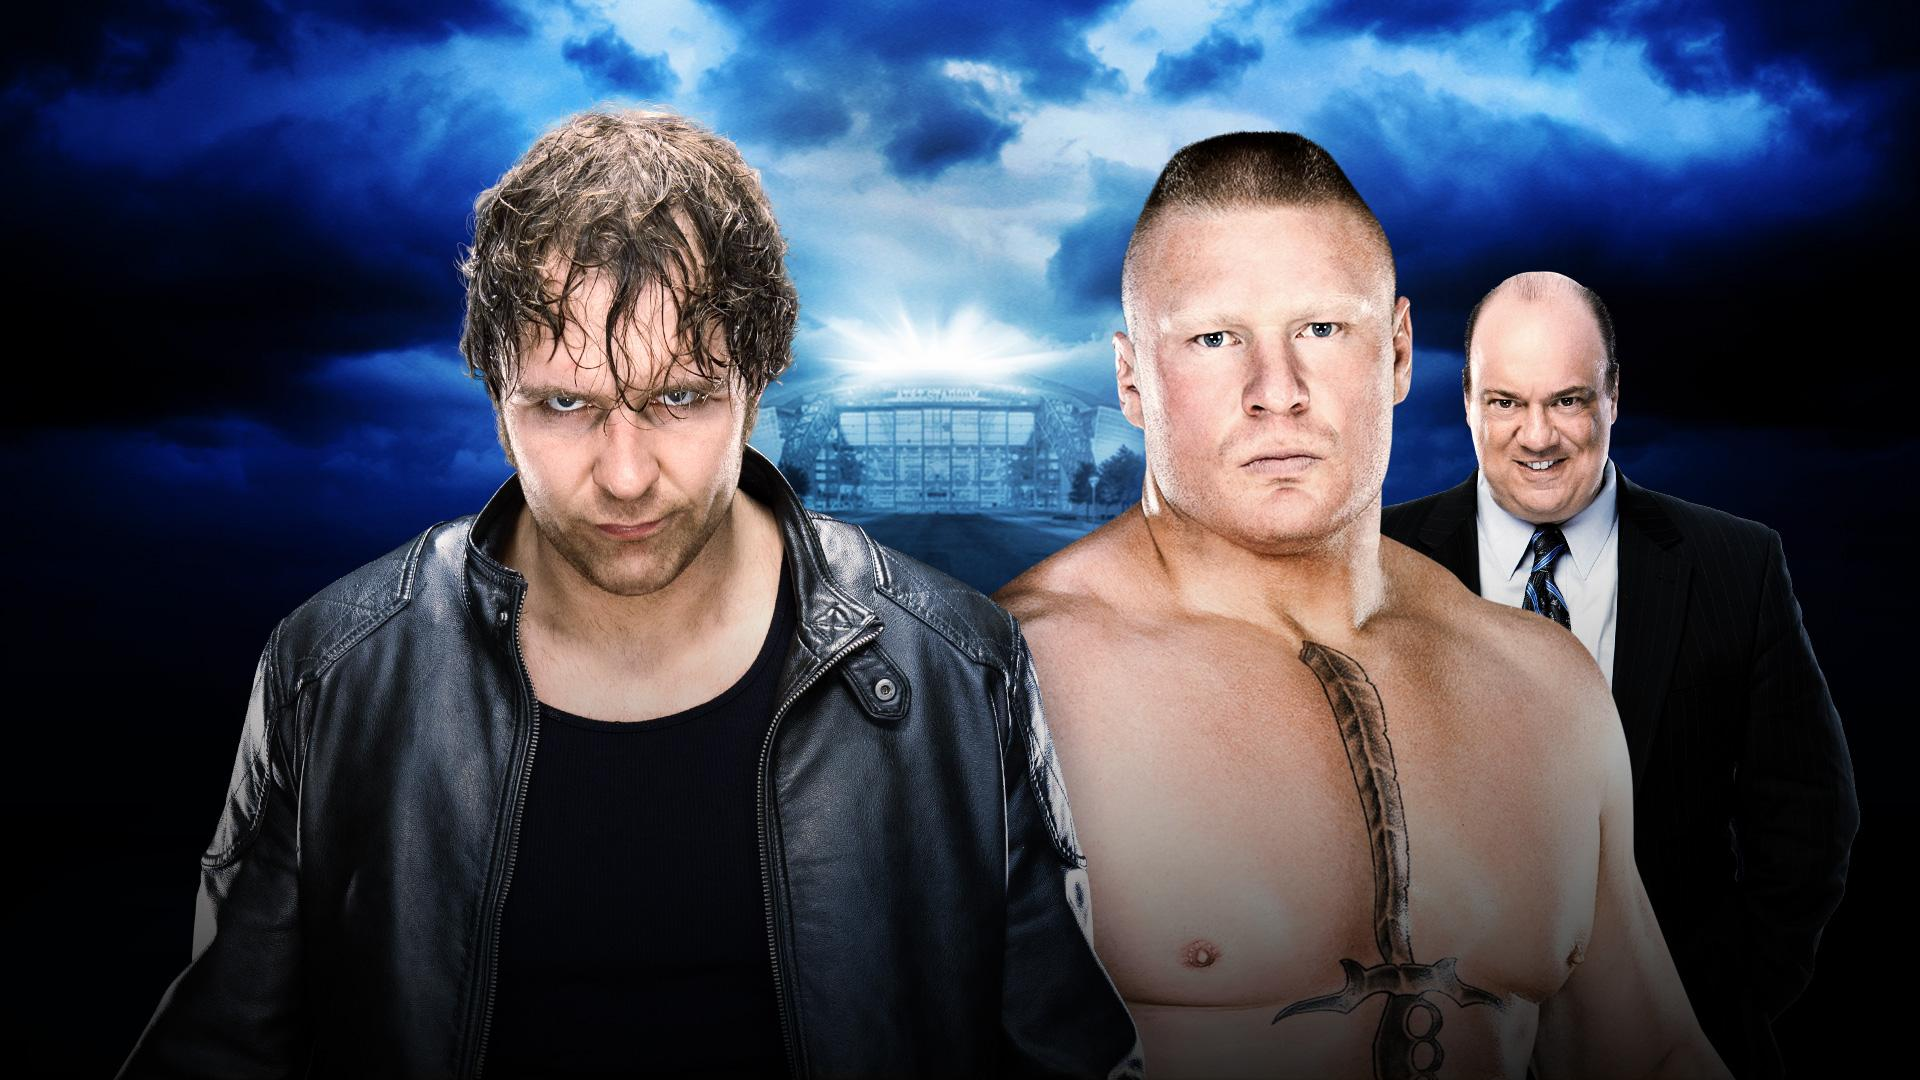 Dean Ambrose vs Brock Lesnar - No Holds Barred Match